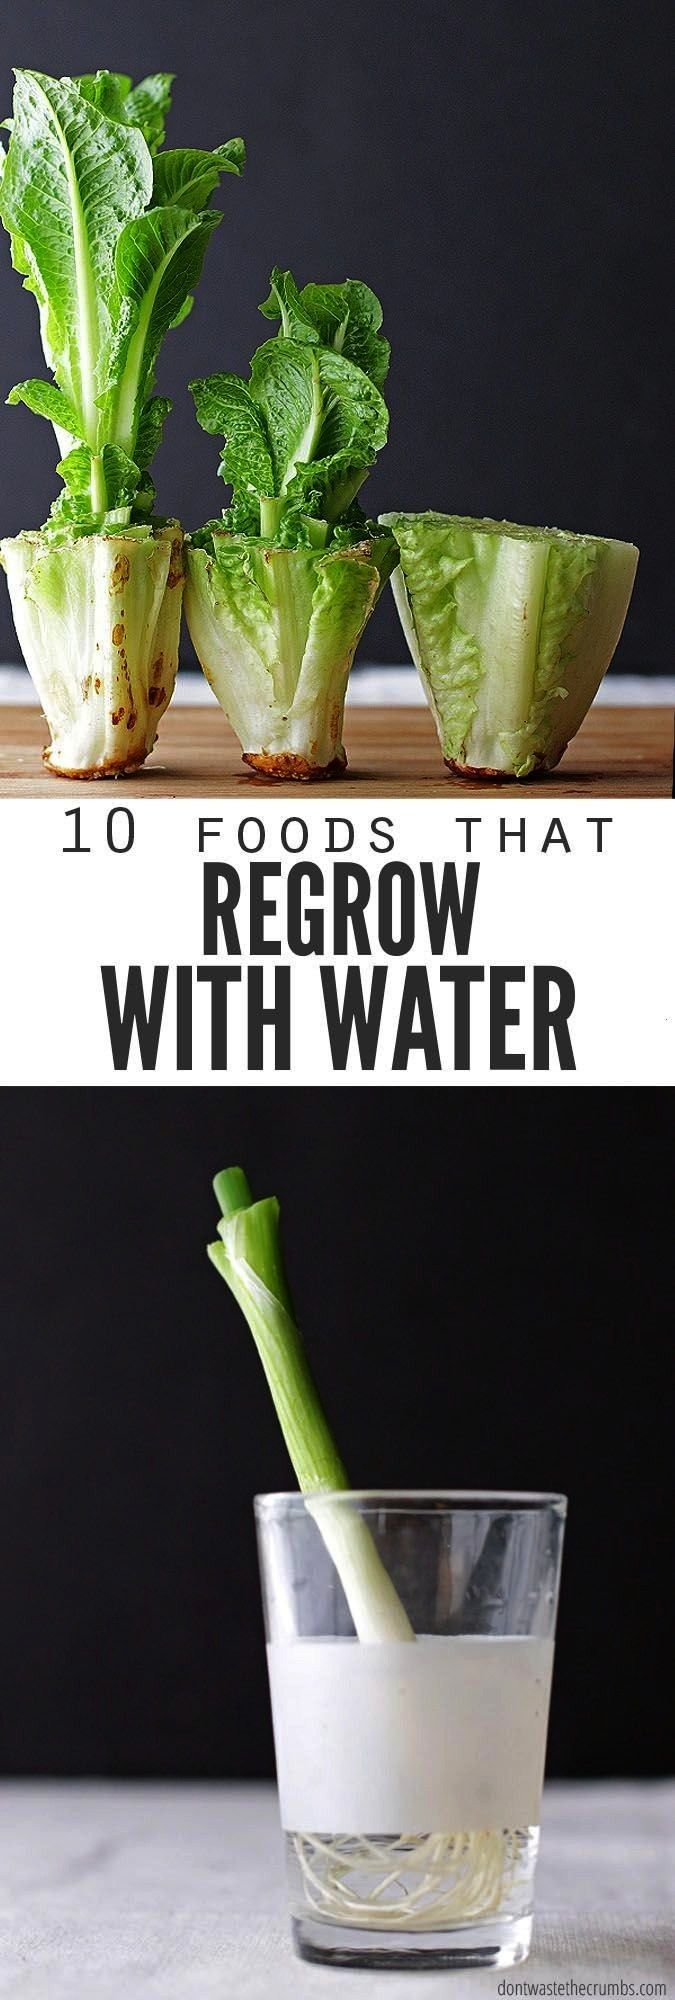 and regrow food scraps in water Perfect if you dont have room for a vegetable garden  are trying to save a few bucks But which veggies or fruit will regrow from scrap Wev...